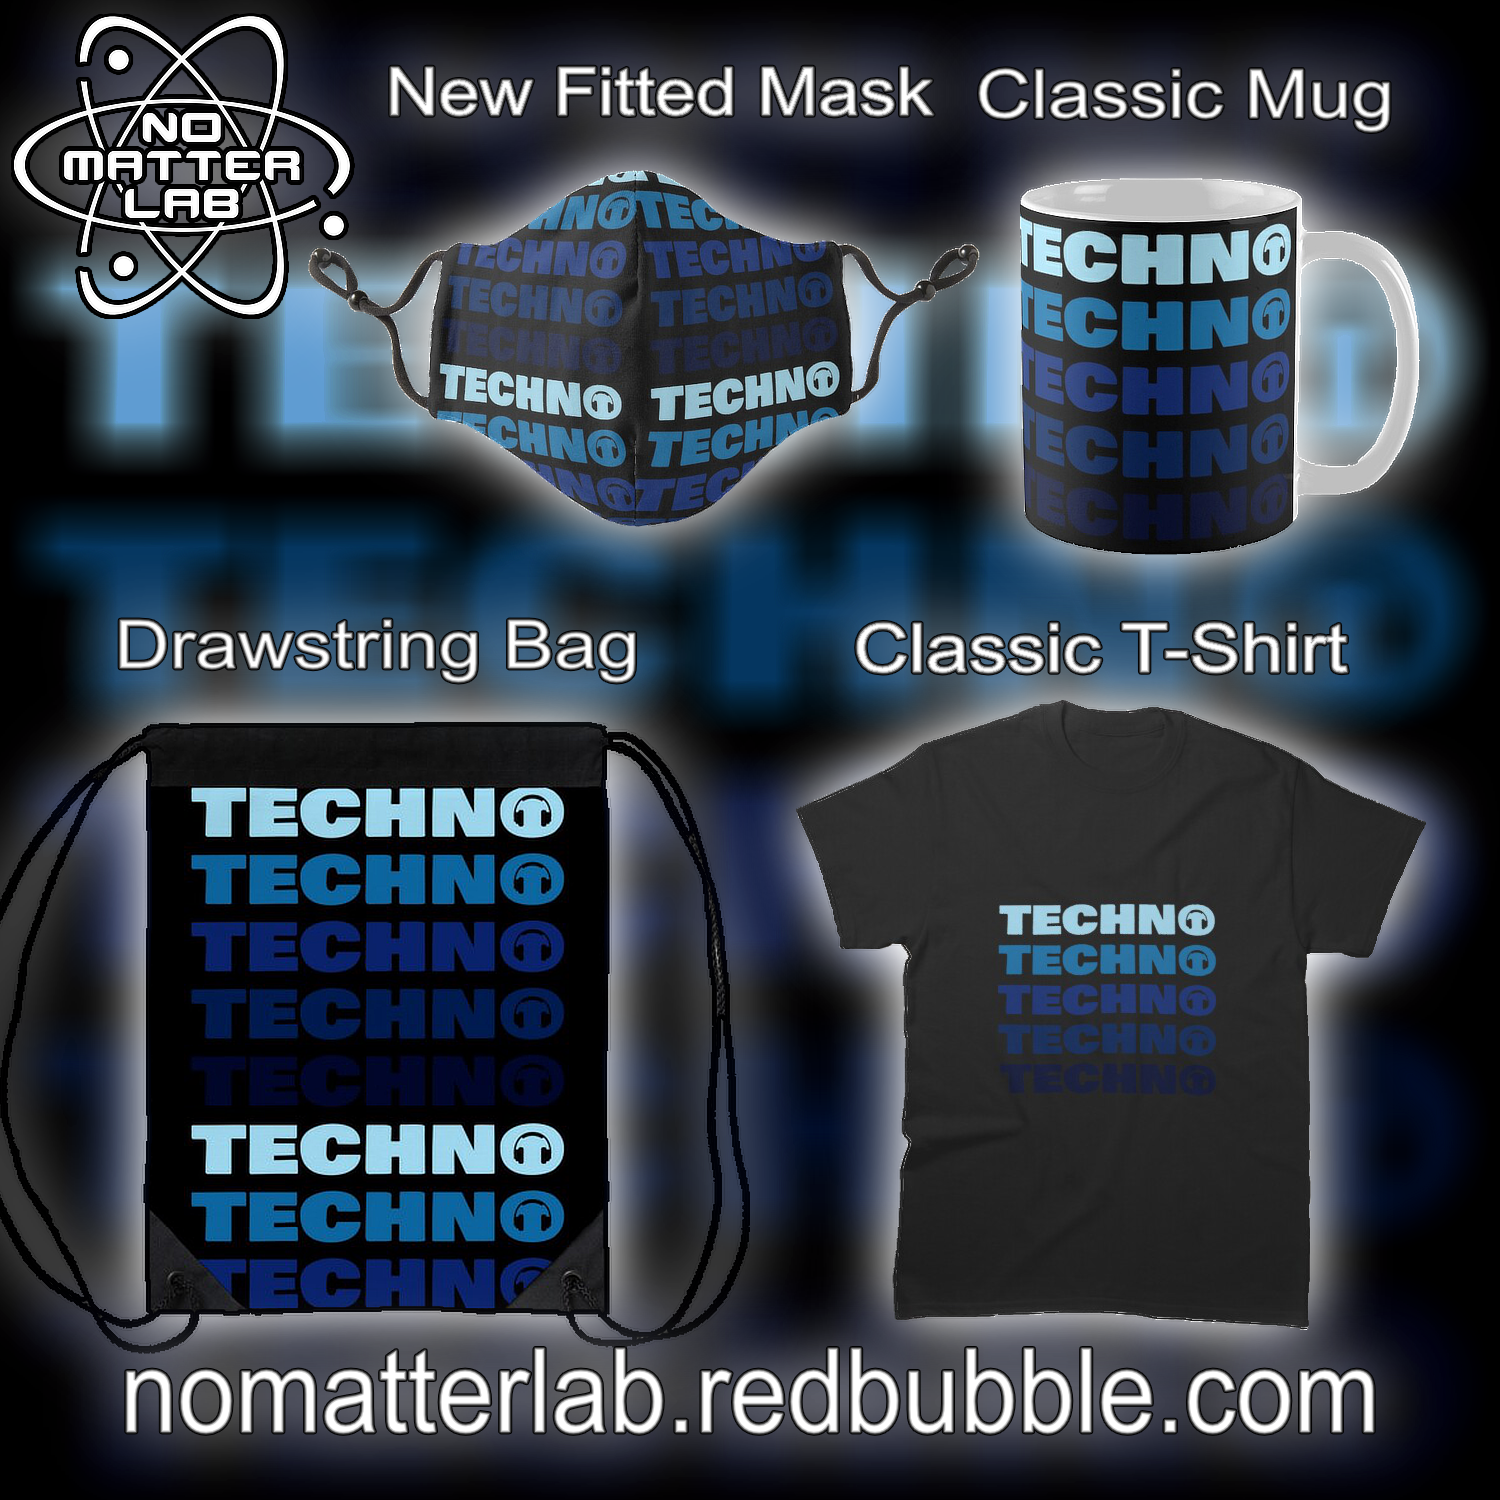 #Technomusic is the heartbeat of the earth. Keep that bassline pumping 24-7 - Commissions and tweaks available on request. Please check out my other designs - - #music #clubbing #techno #musician #musicproducer #technolovers #technoparty #technolove #technofamily #technolife #technodj #technopeople #technolover #technodance #technovibes #technofestival #technohouse #technomusiclove #clubbingnight #clubbingoutfit #clubbingparis #clubbinglife #infoclubbing #technominimal #technonight #clubbing裙